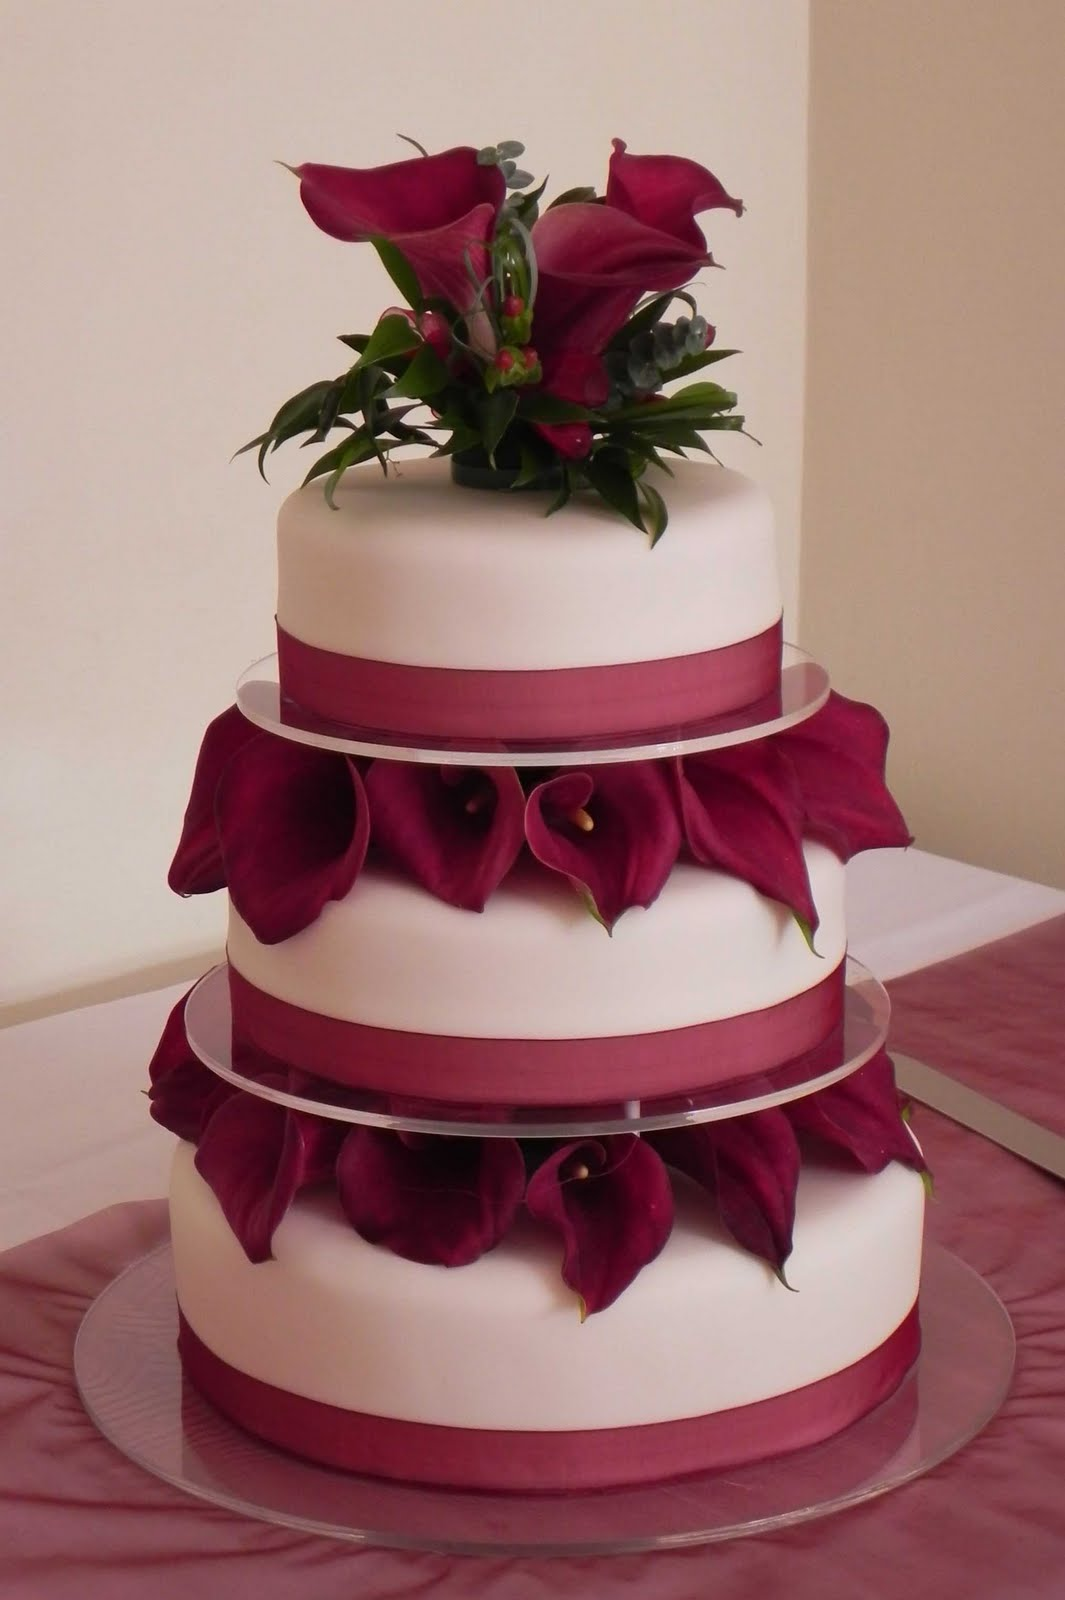 Tier Wedding Cakes With Calla Lilies